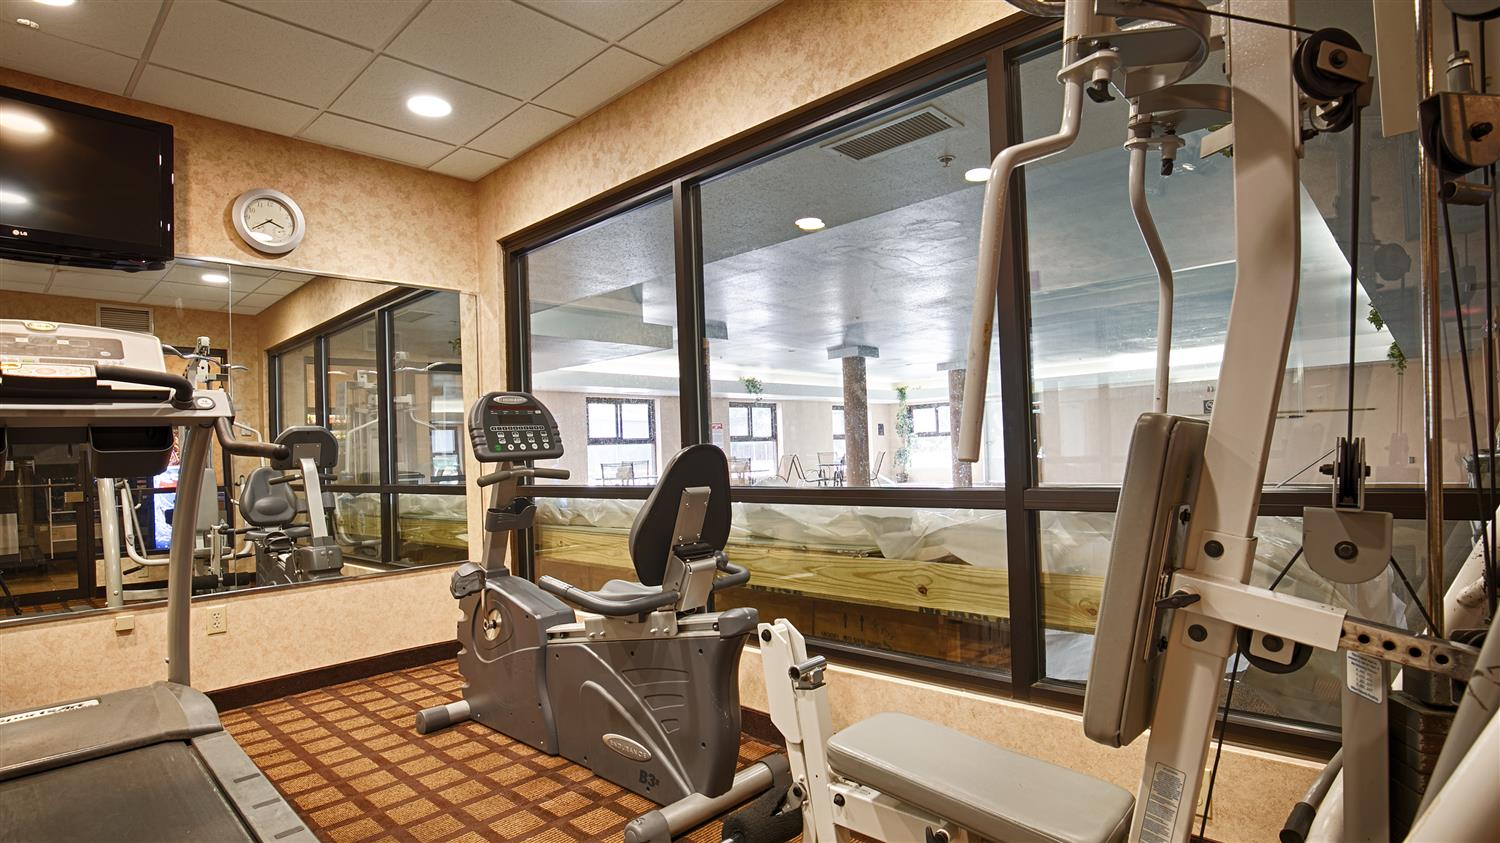 Fitness/ Exercise Room - Best Western Inn & Suites Midway Airport Burbank